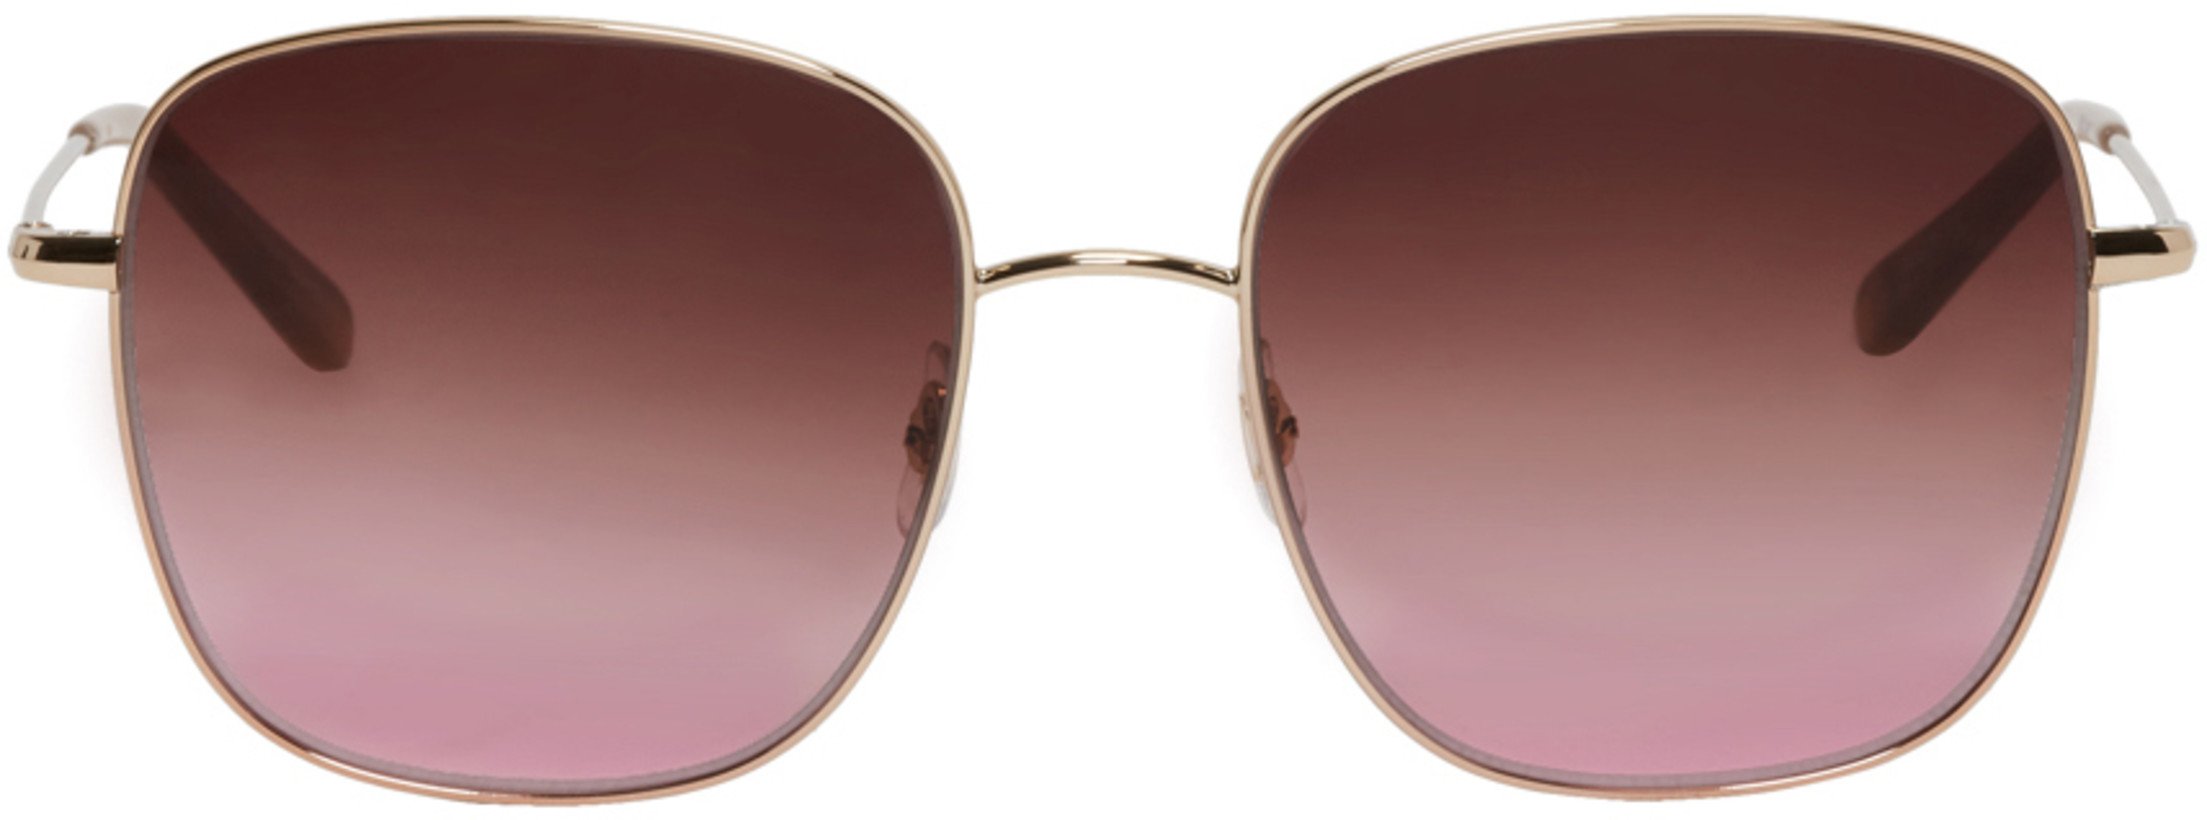 Garrett Leight Gold Tuscany Sunglasses